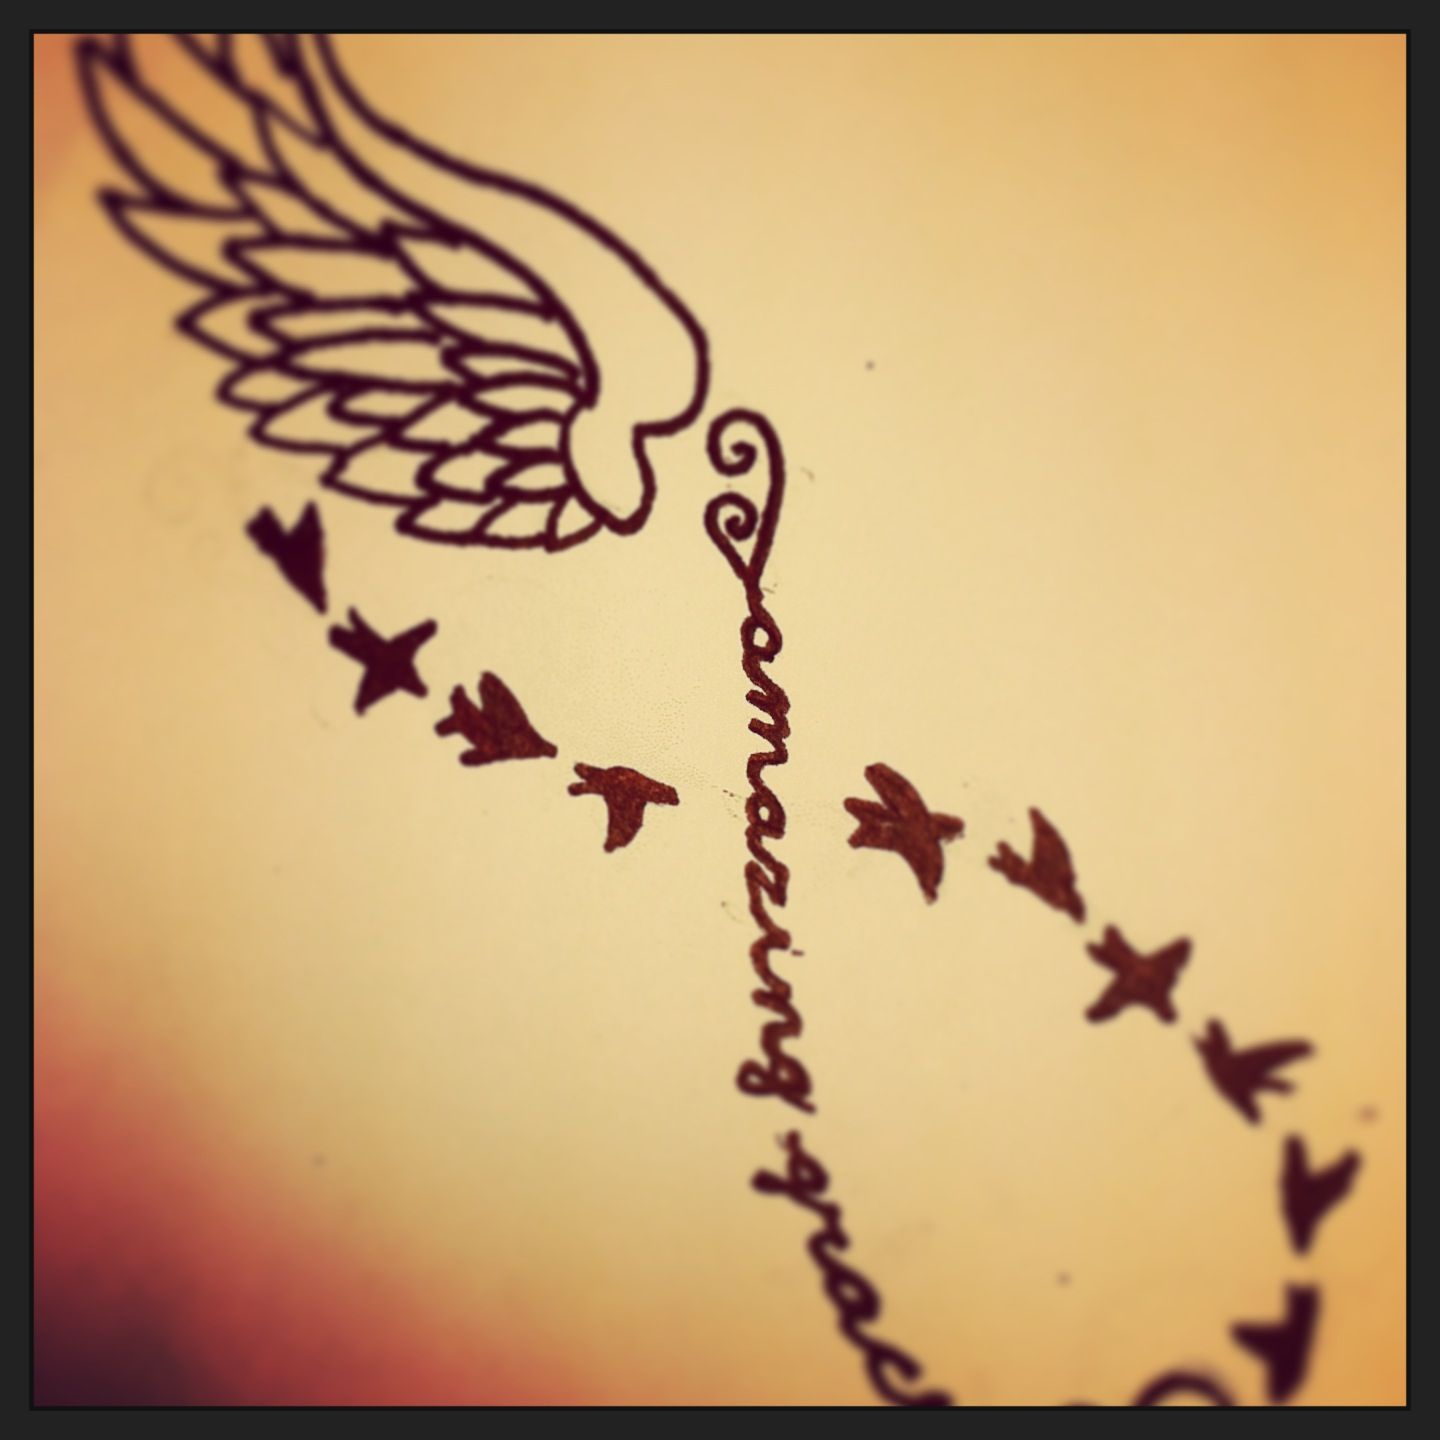 infinity tattoo w angel wings and sparrows then amazing grace written in the middle my. Black Bedroom Furniture Sets. Home Design Ideas